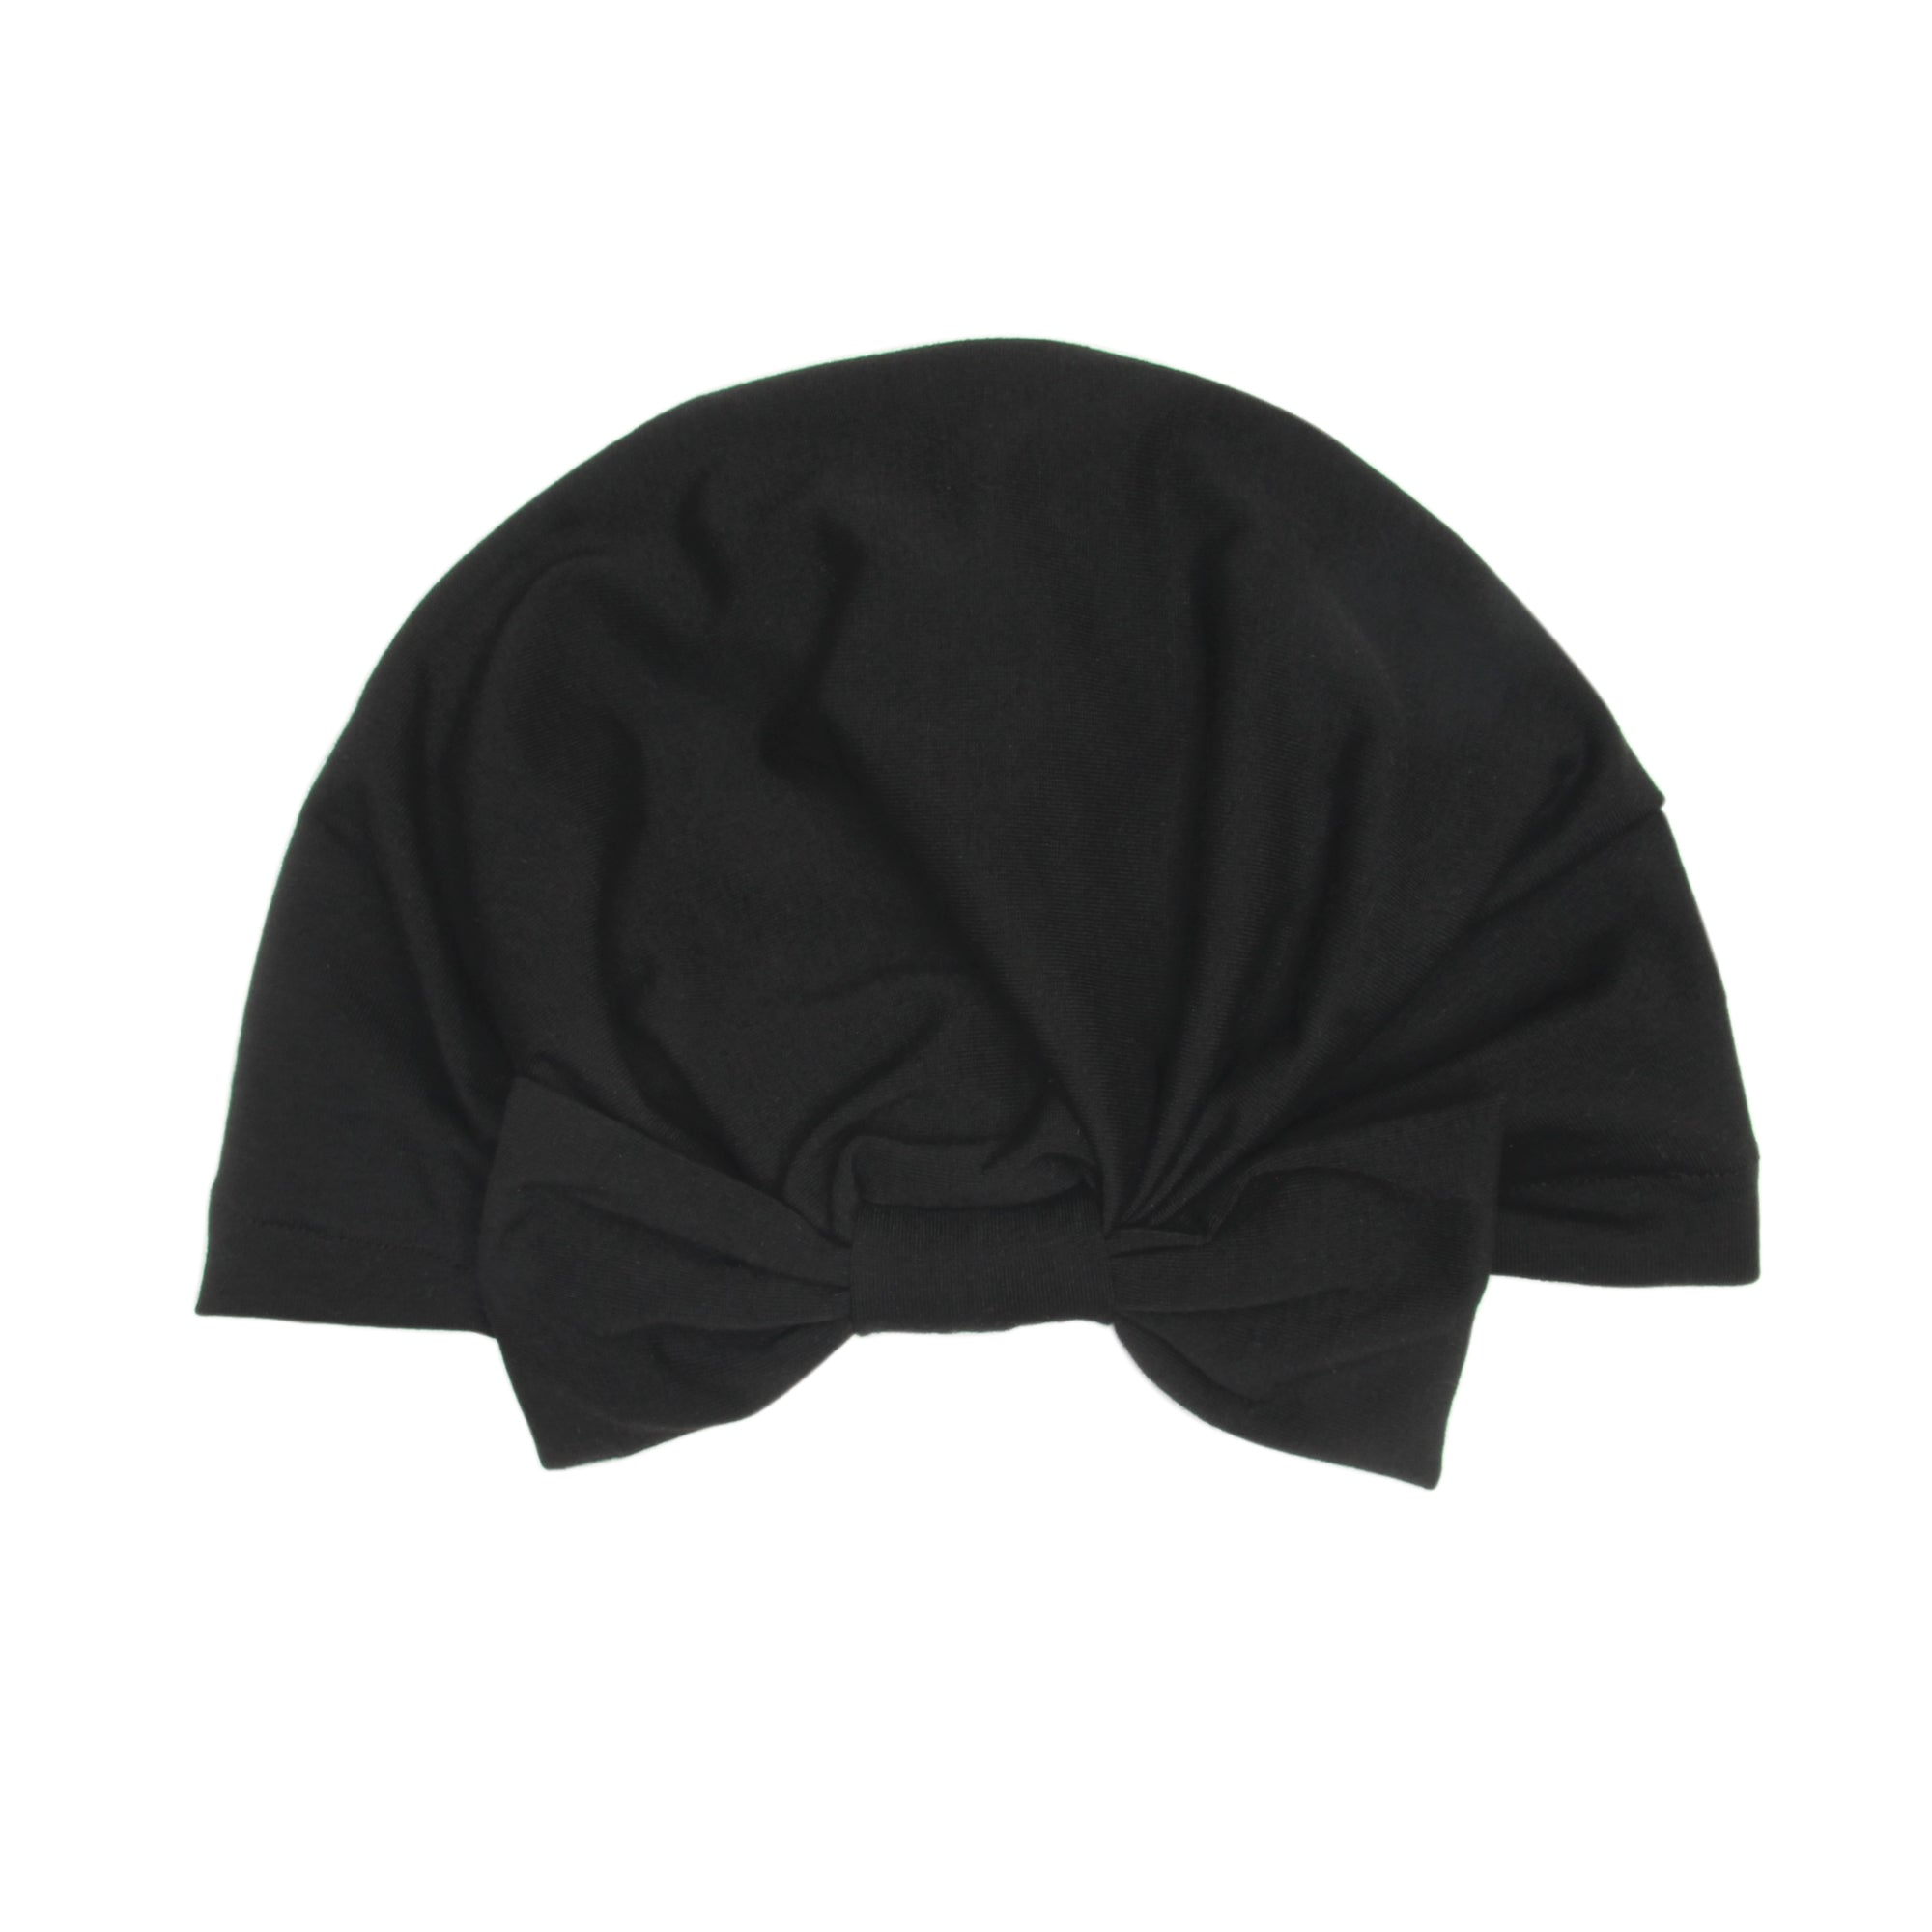 BANDED Women's Full Coverage Headwraps + Hair Accessories - Fashion Turban